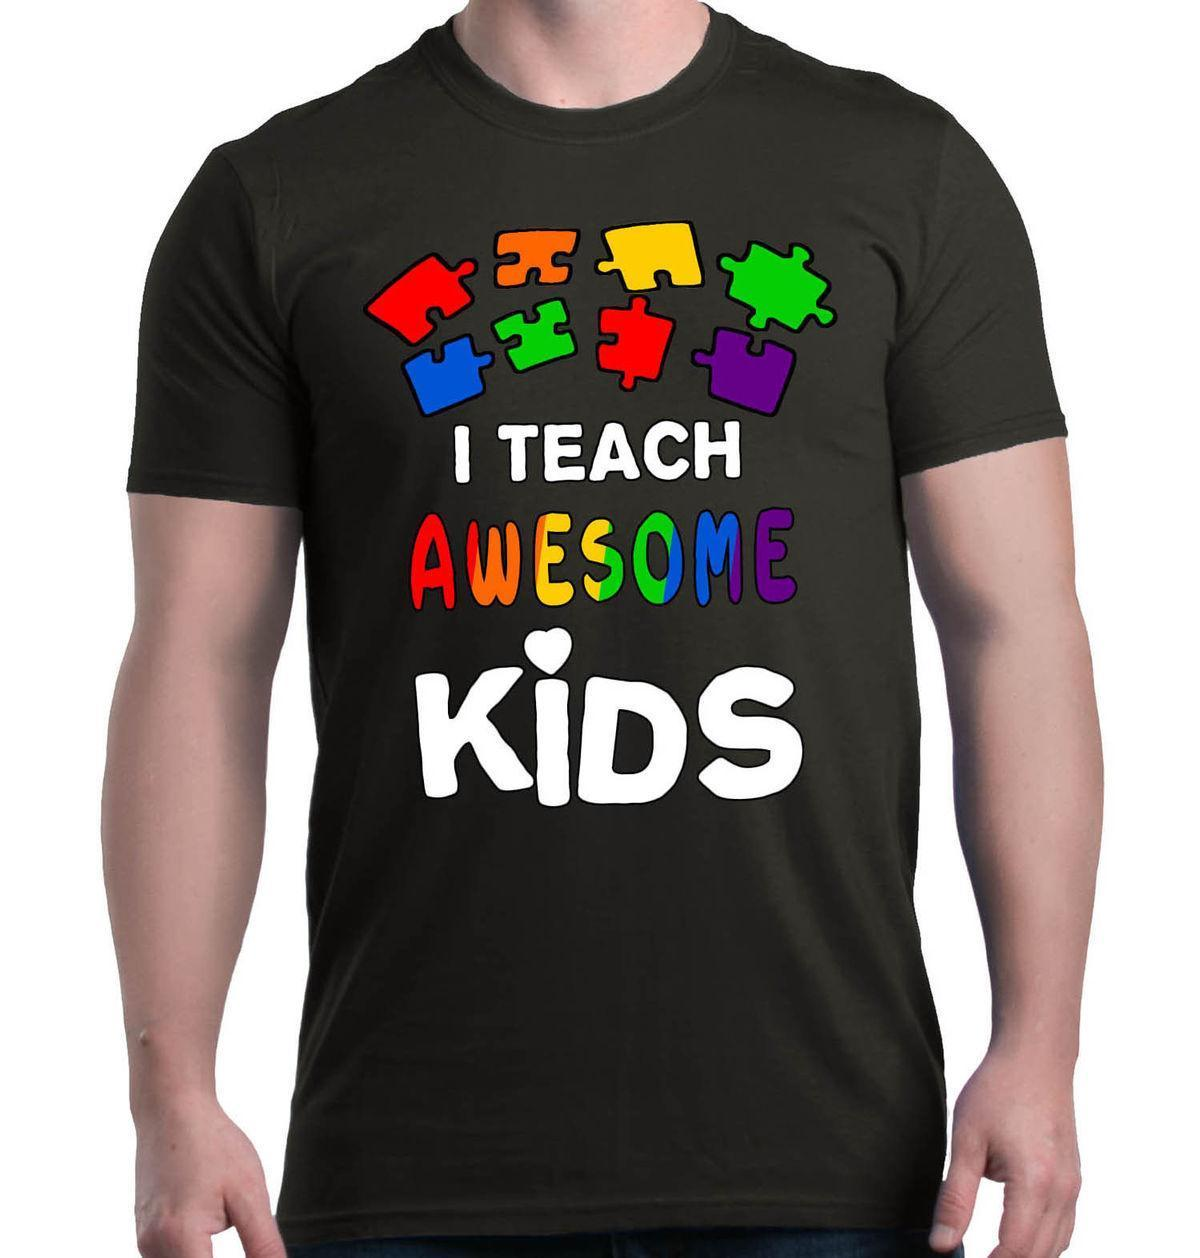 23bf5423c I Teach Awesome Kids T Shirt Autism Awareness Month Shirts Mans Unique  Cotton Short Sleeves O Neck T Shirt Funny Buy Online T Shirts Make Tee  Shirts From ...